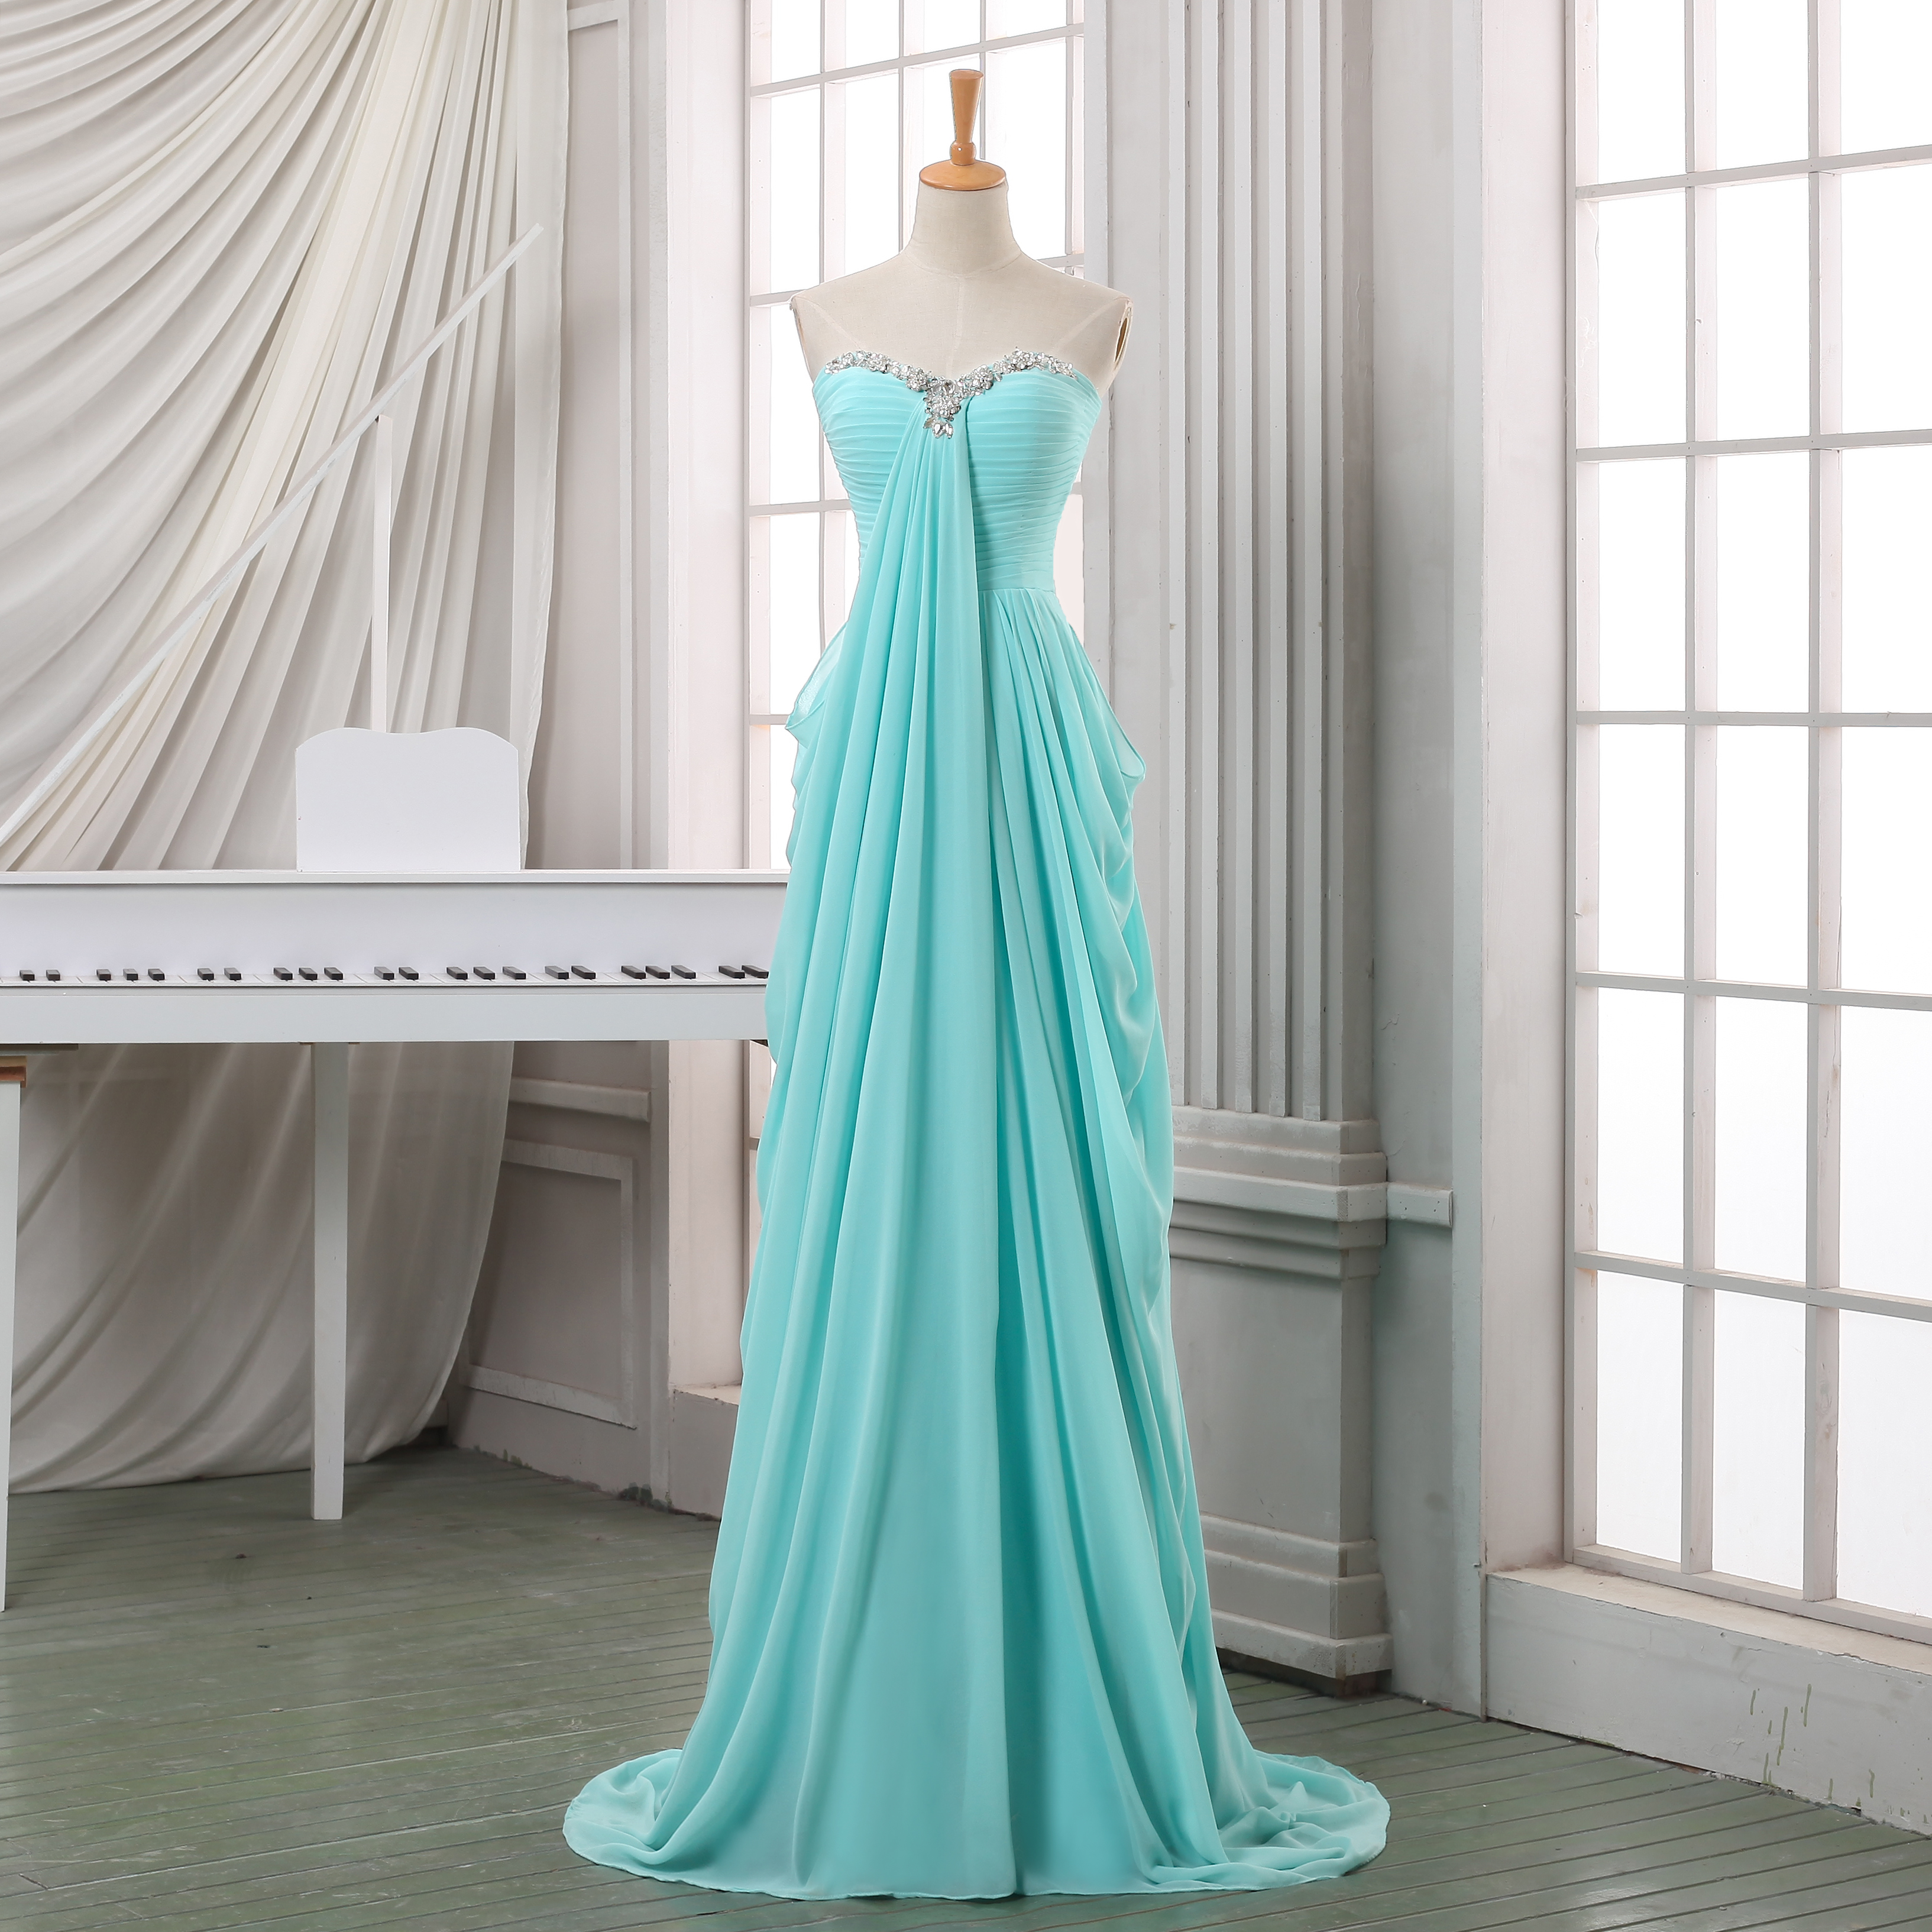 New Sweetheart Prom Dress,Simple Blue Chiffon Baby Blue Prom Gown ...